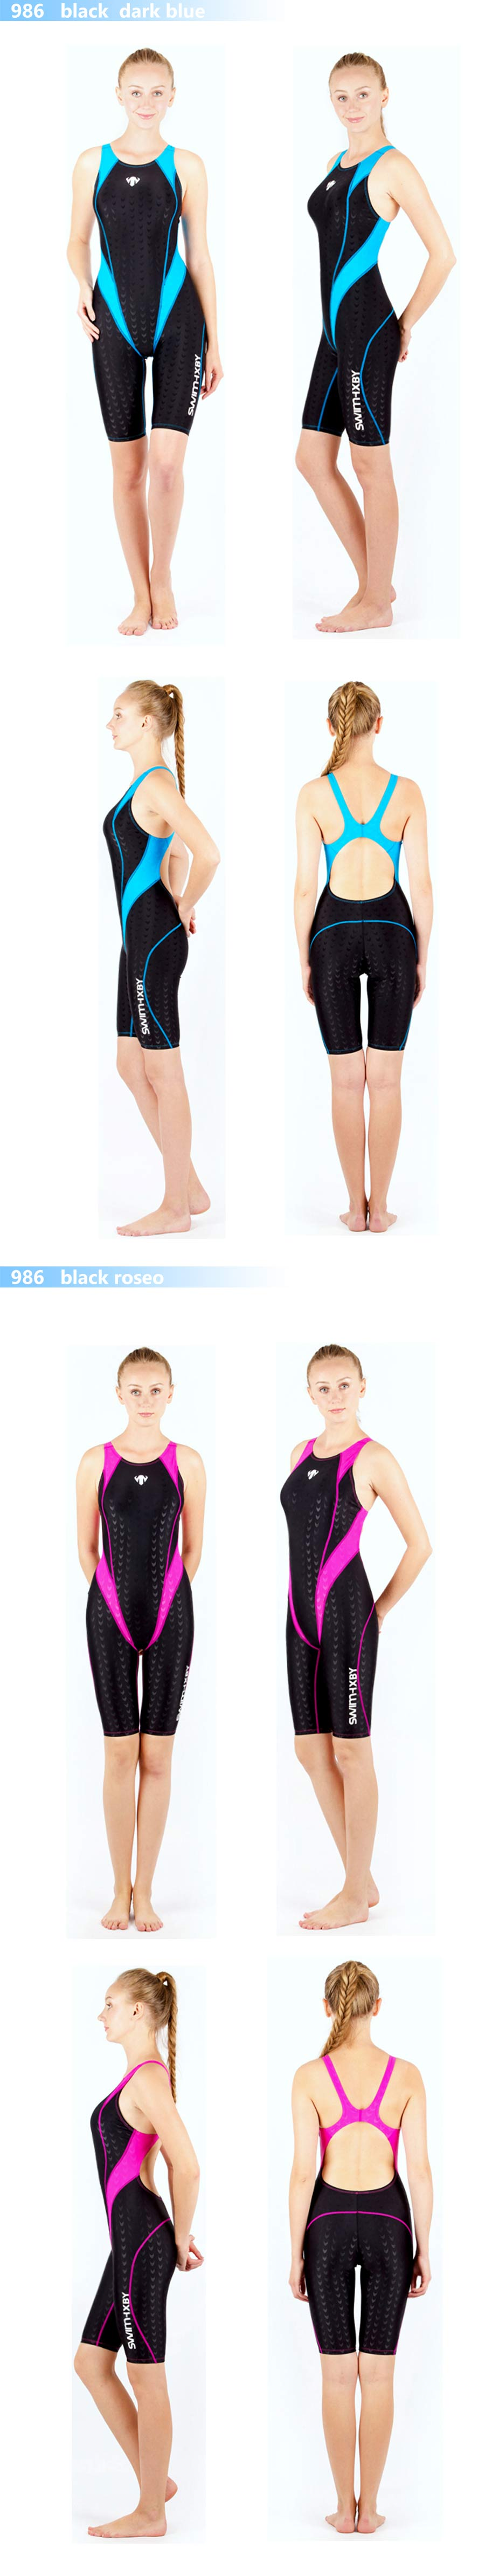 HXBY swimwear swimming suit women swimsuit Competition racing swimsuits knee swim suits plus size one piece training swimwear 4